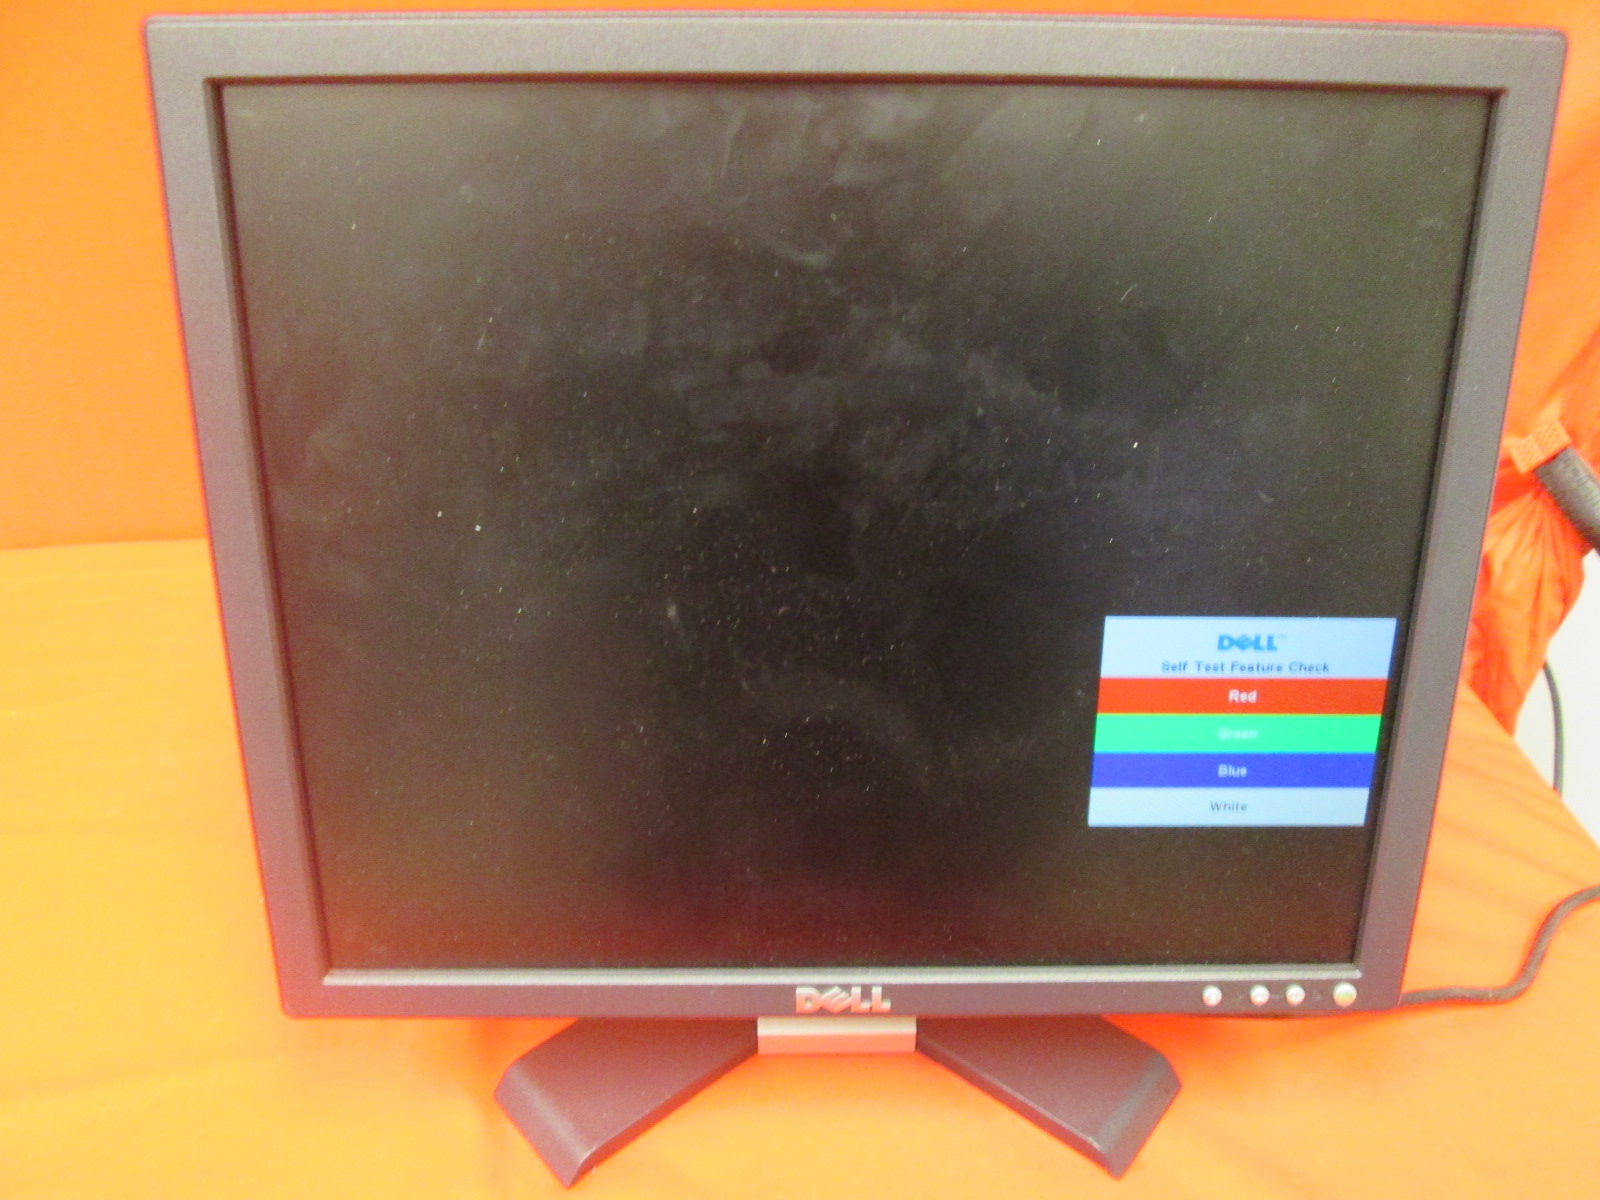 Dell E176FP 17 Inch Flat Panel Monitor Incomplete